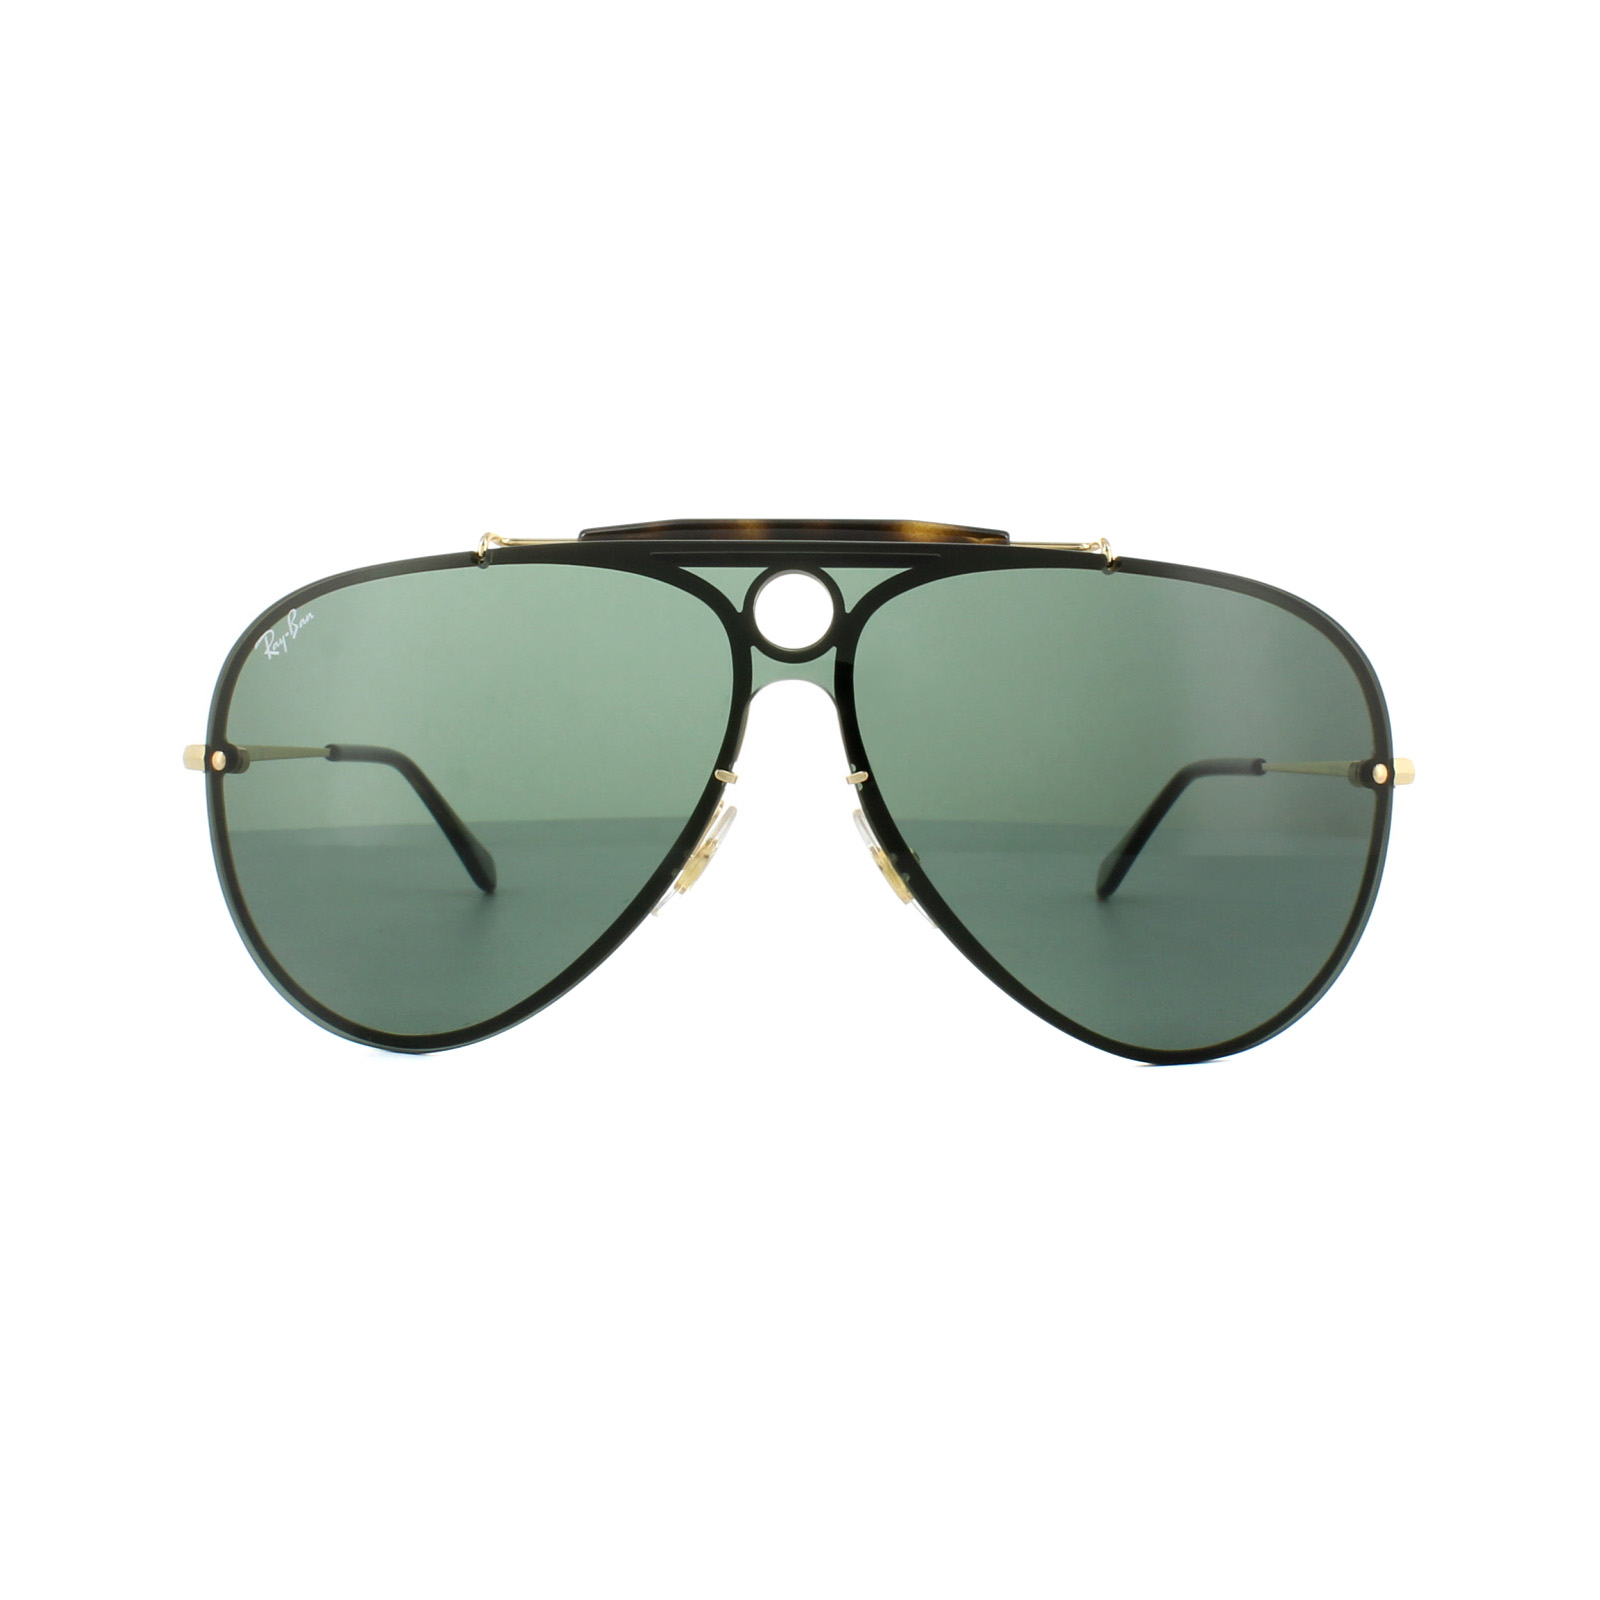 Sentinel Ray-Ban Sunglasses Blaze Shooter 3581N 001 71 Gold Green. Sentinel  Thumbnail 3 d8891215fc